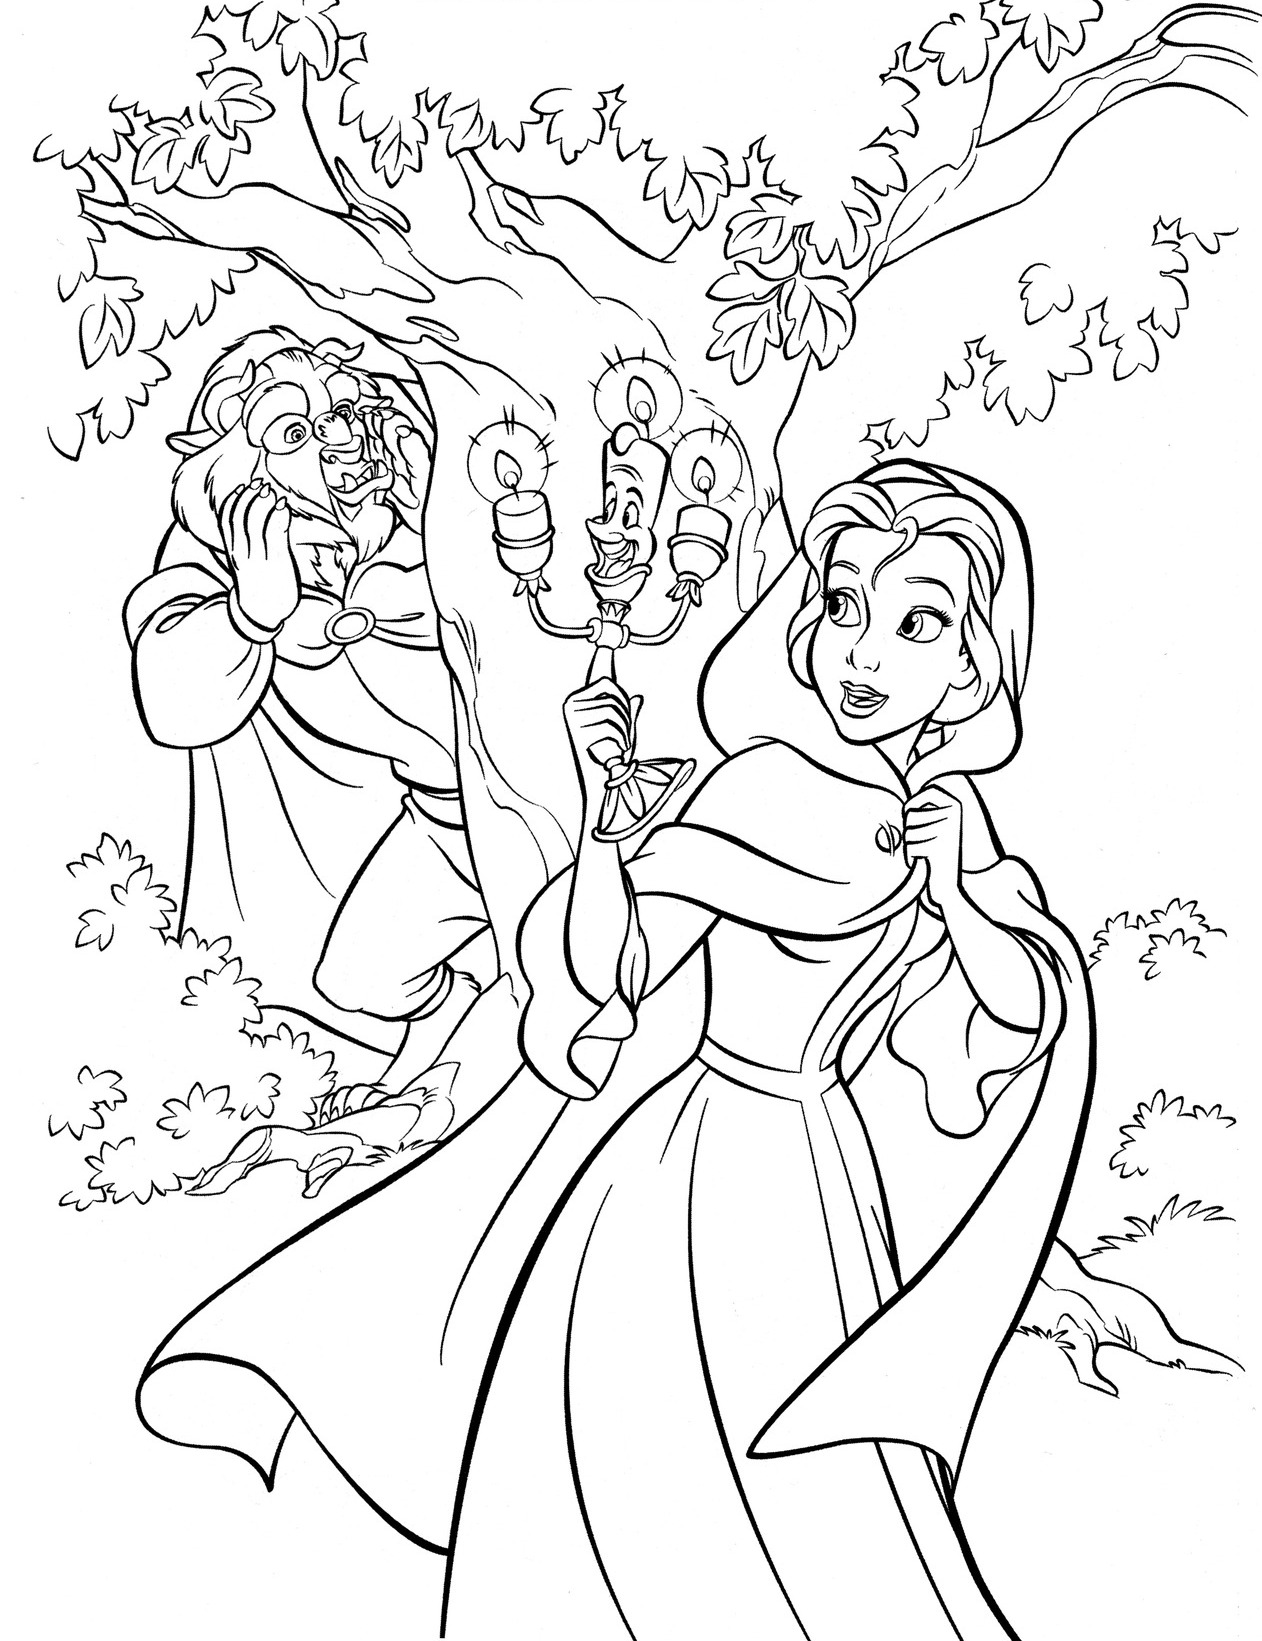 graphic regarding Beauty and the Beast Printable Coloring Pages known as Beast Coloring Website page at  No cost for unique